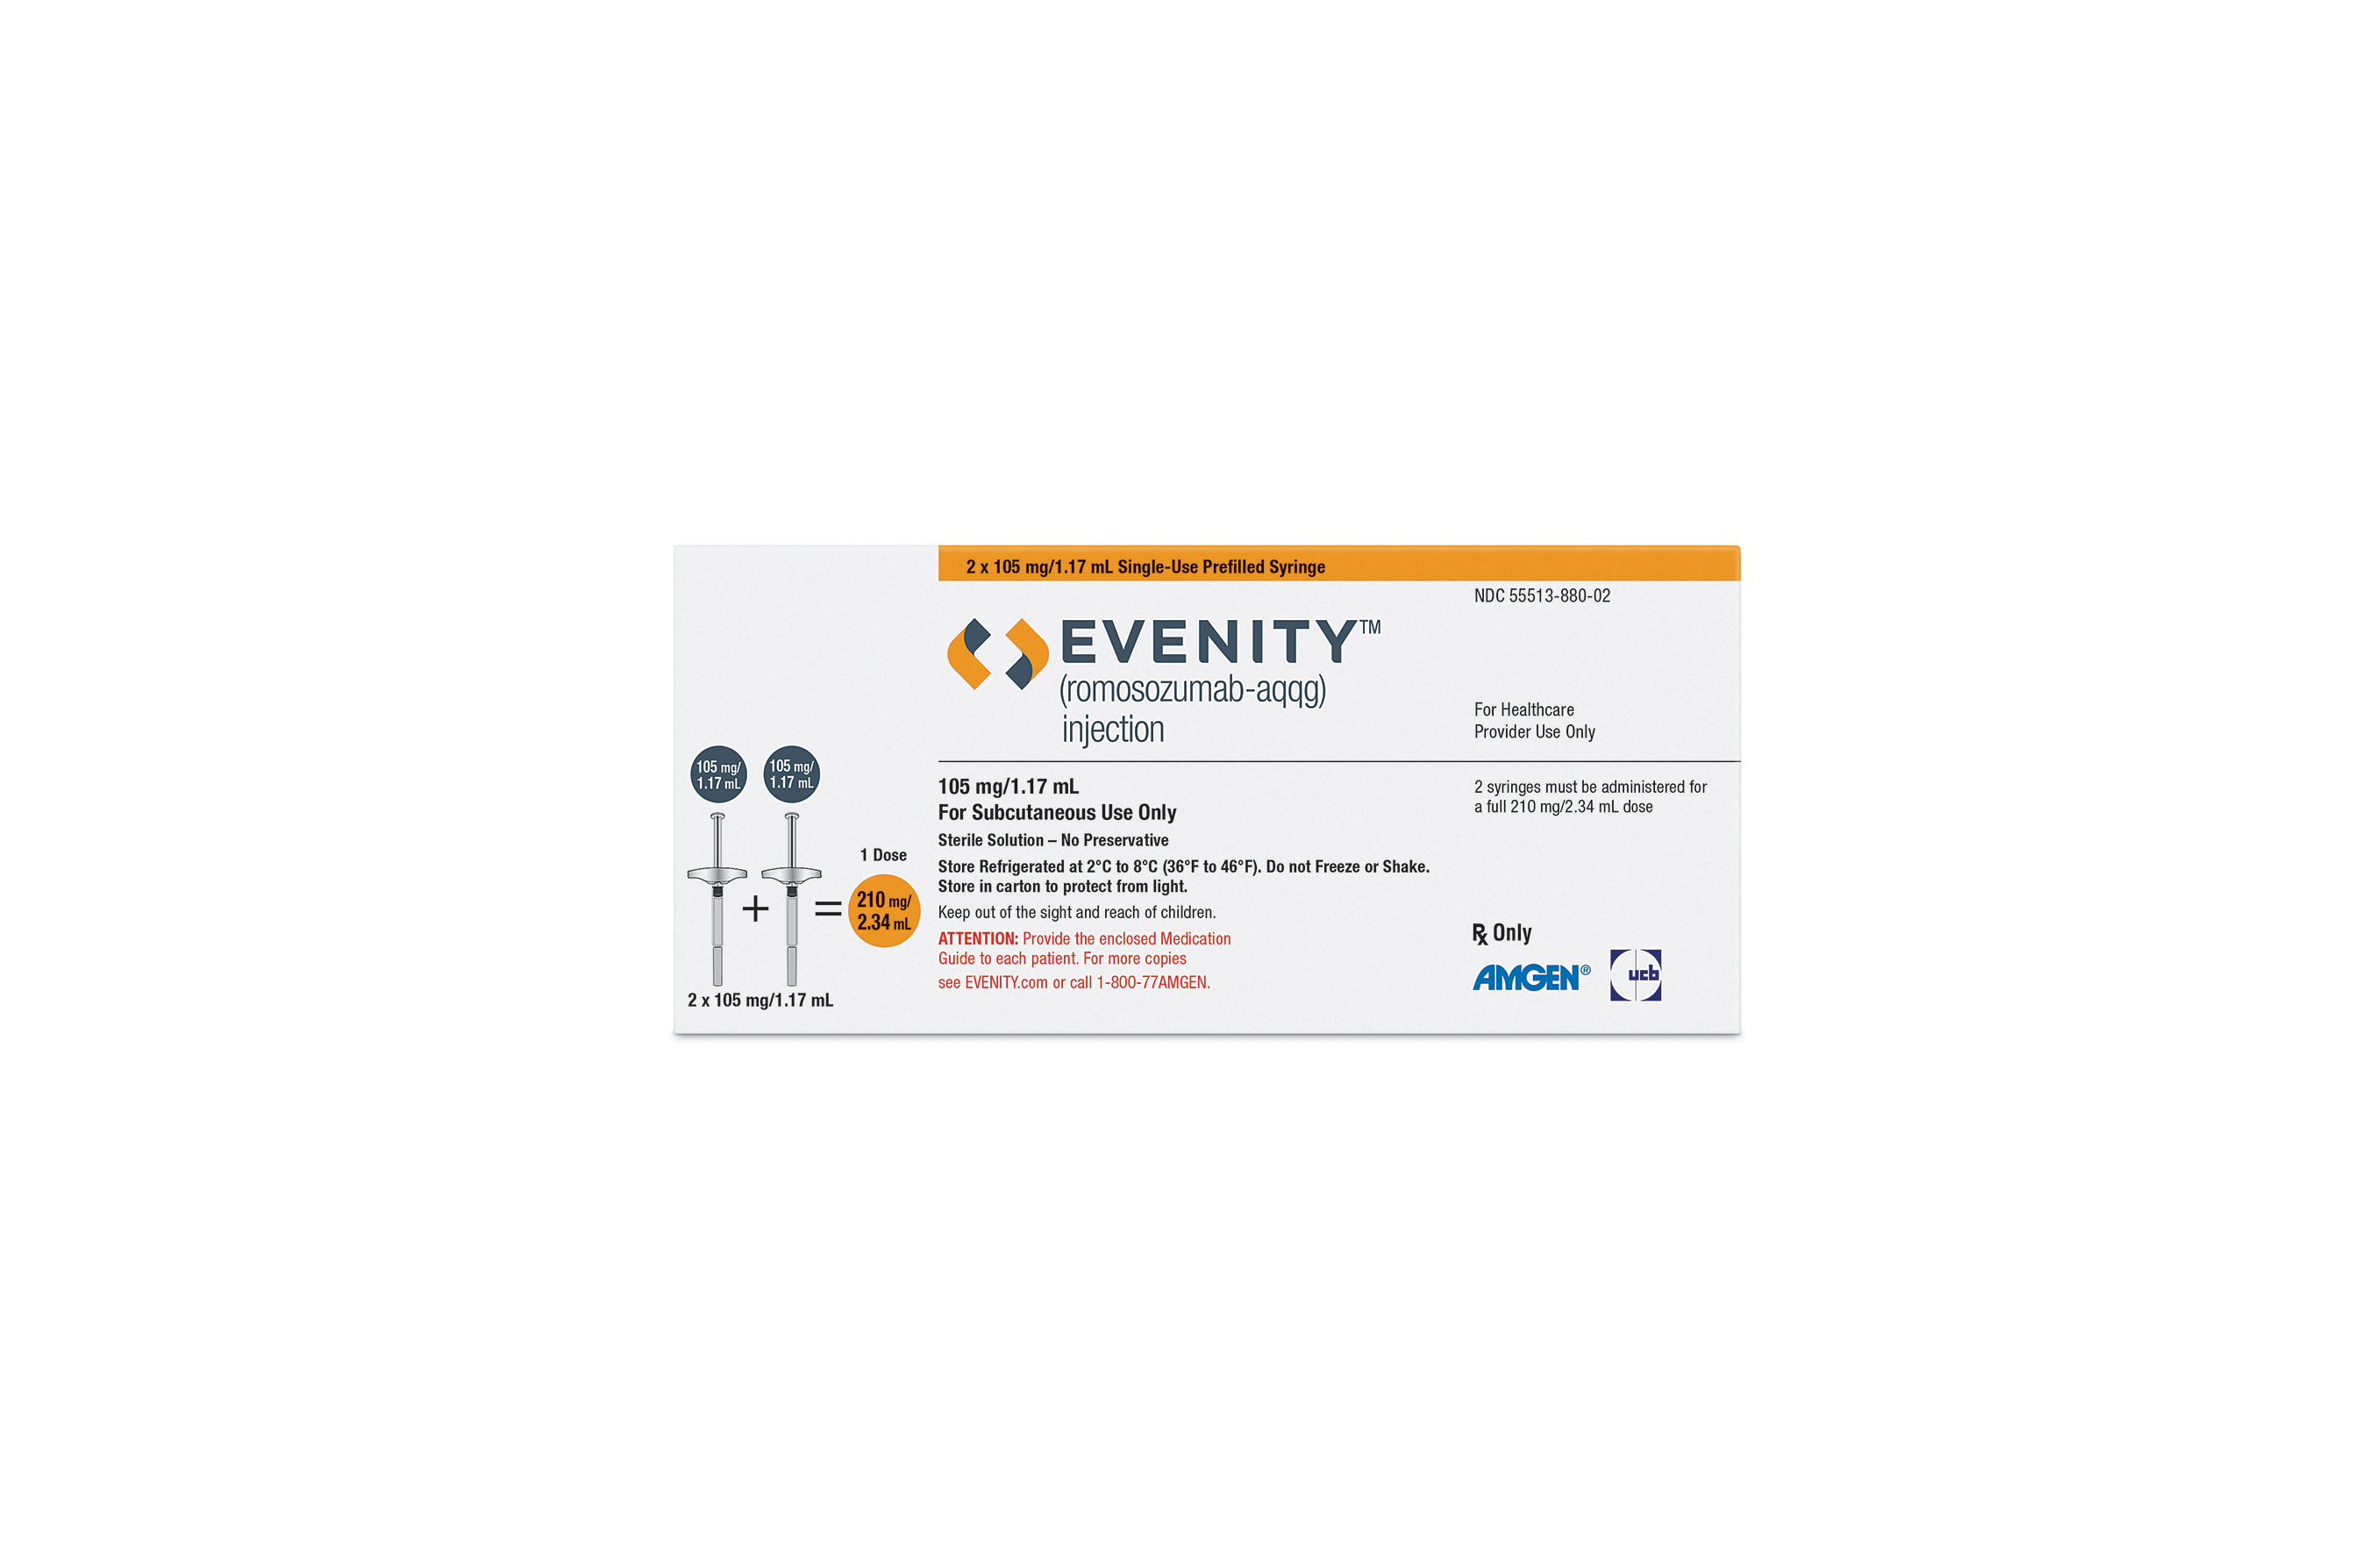 FDA Approves EVENITY™ (romosozumab-aqqg) For The Treatment ...